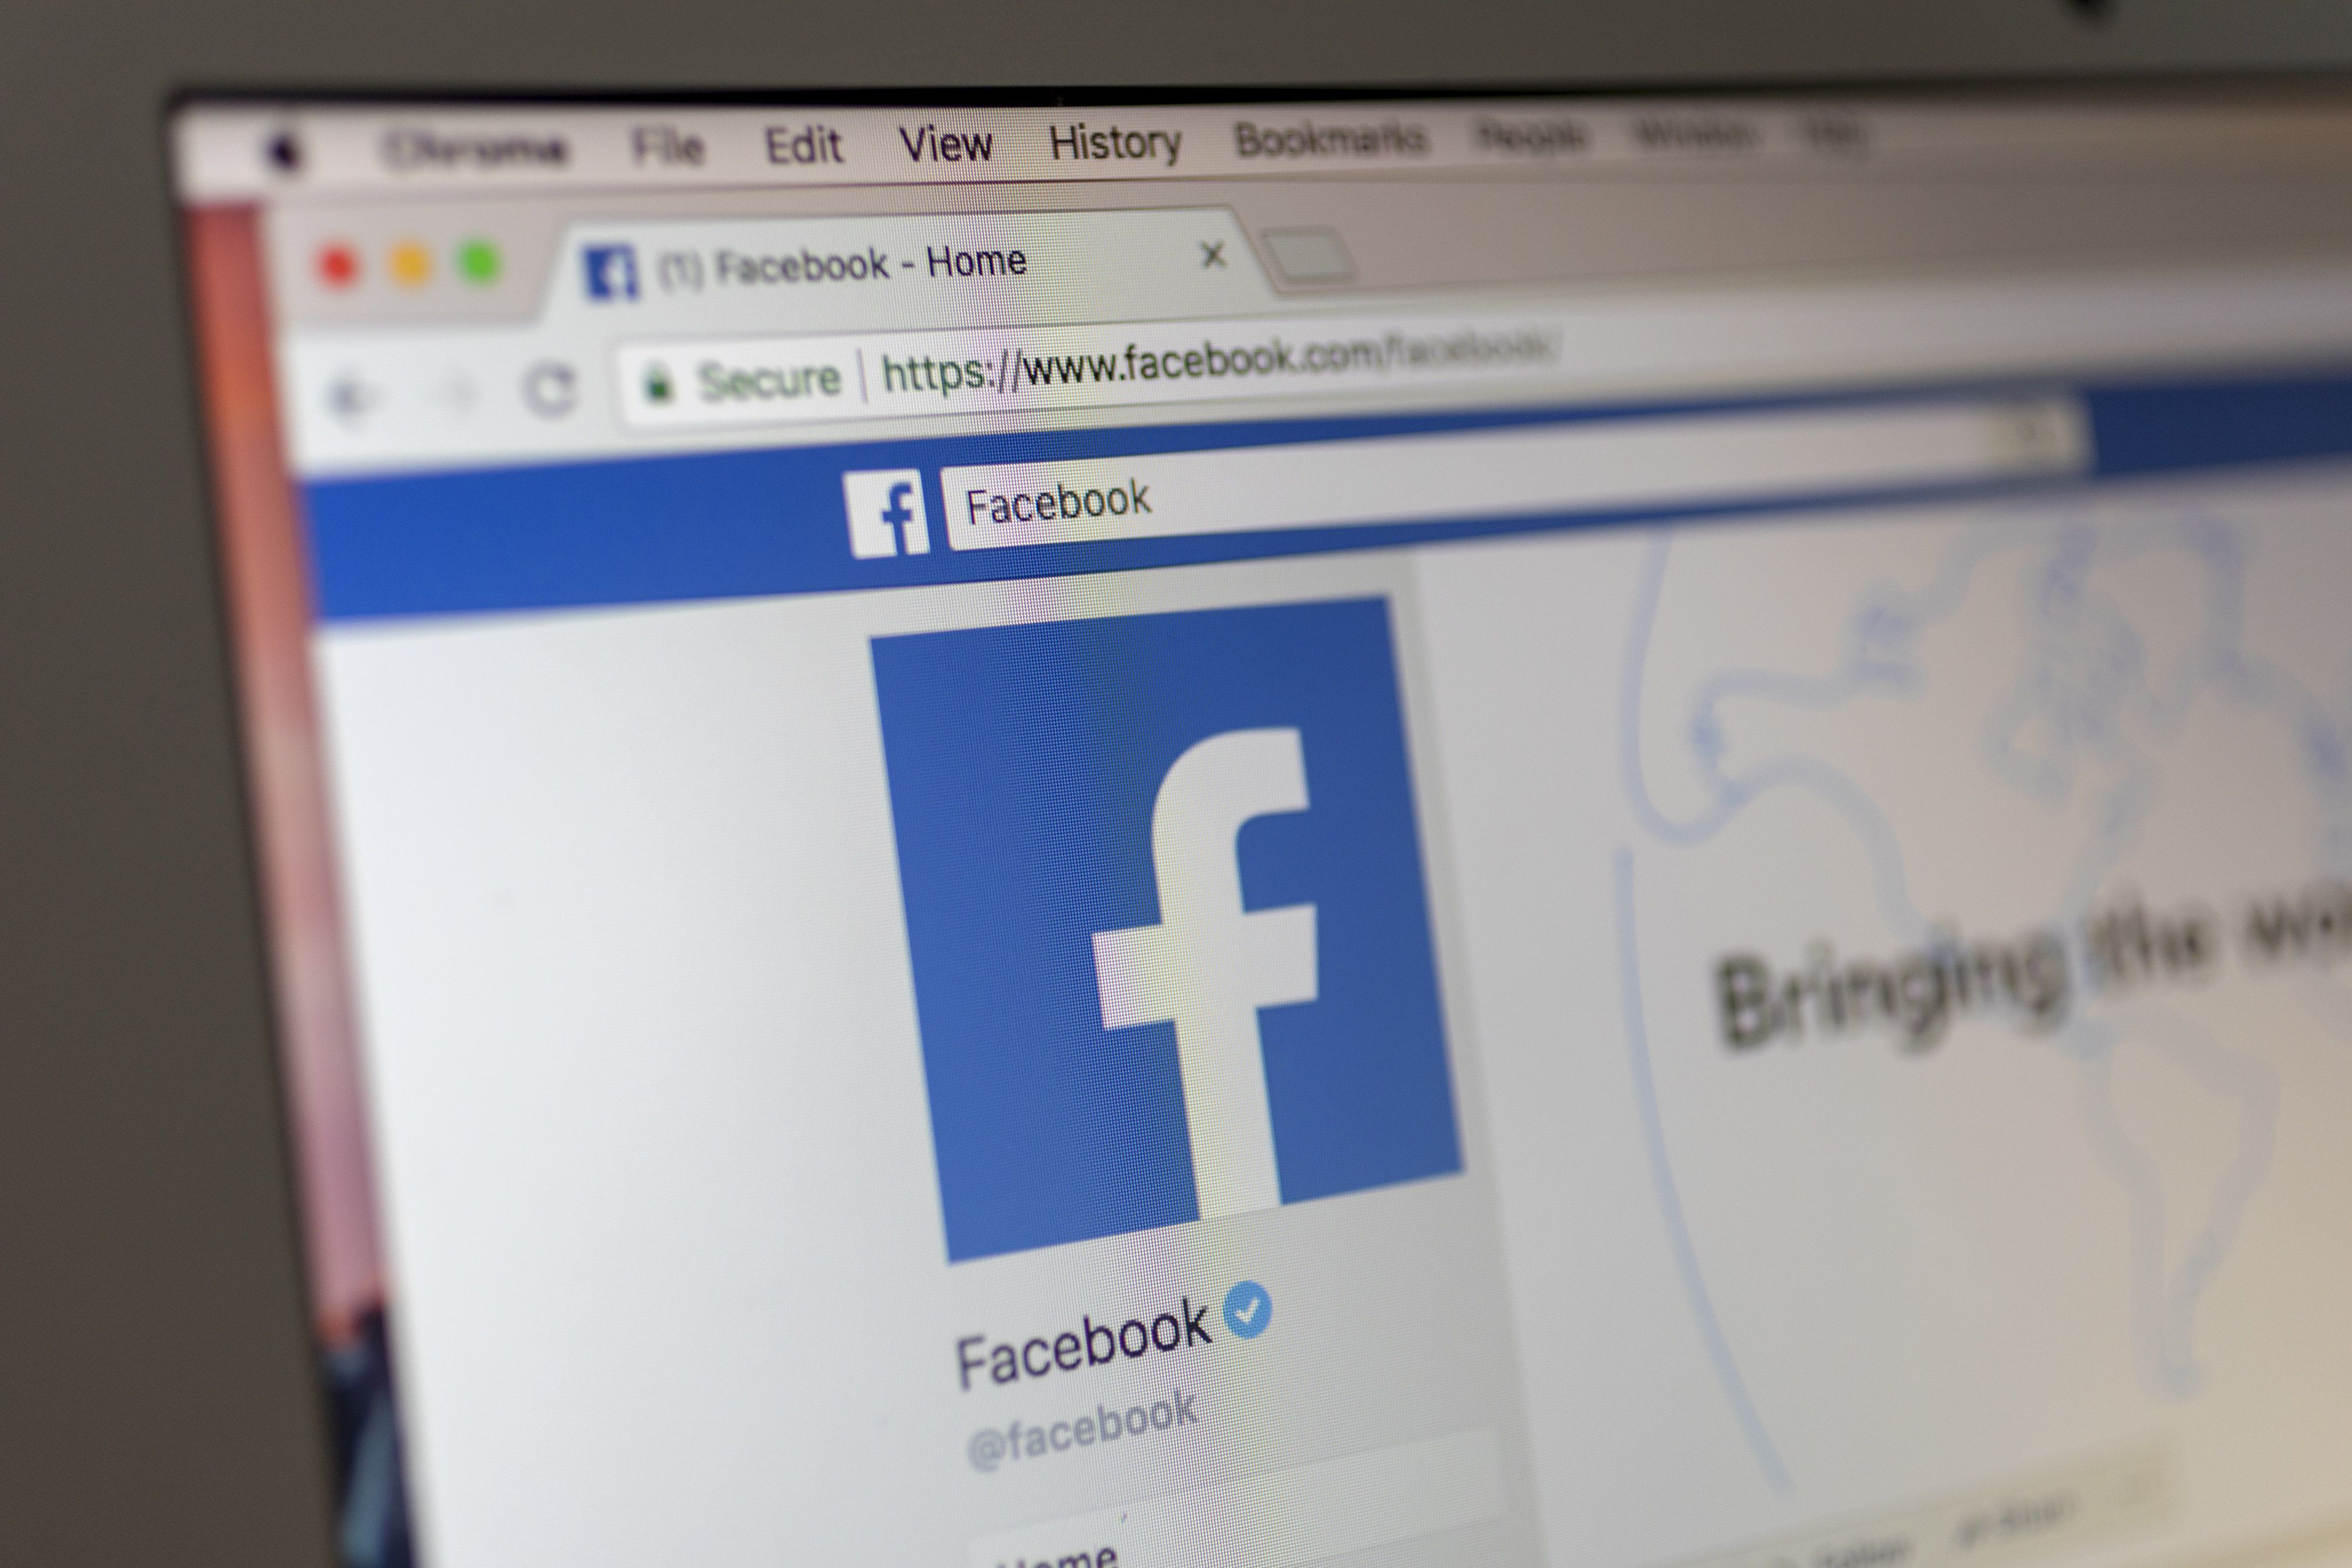 Child Bride Auctioned Off On Facebook, Which Didn't Notice The